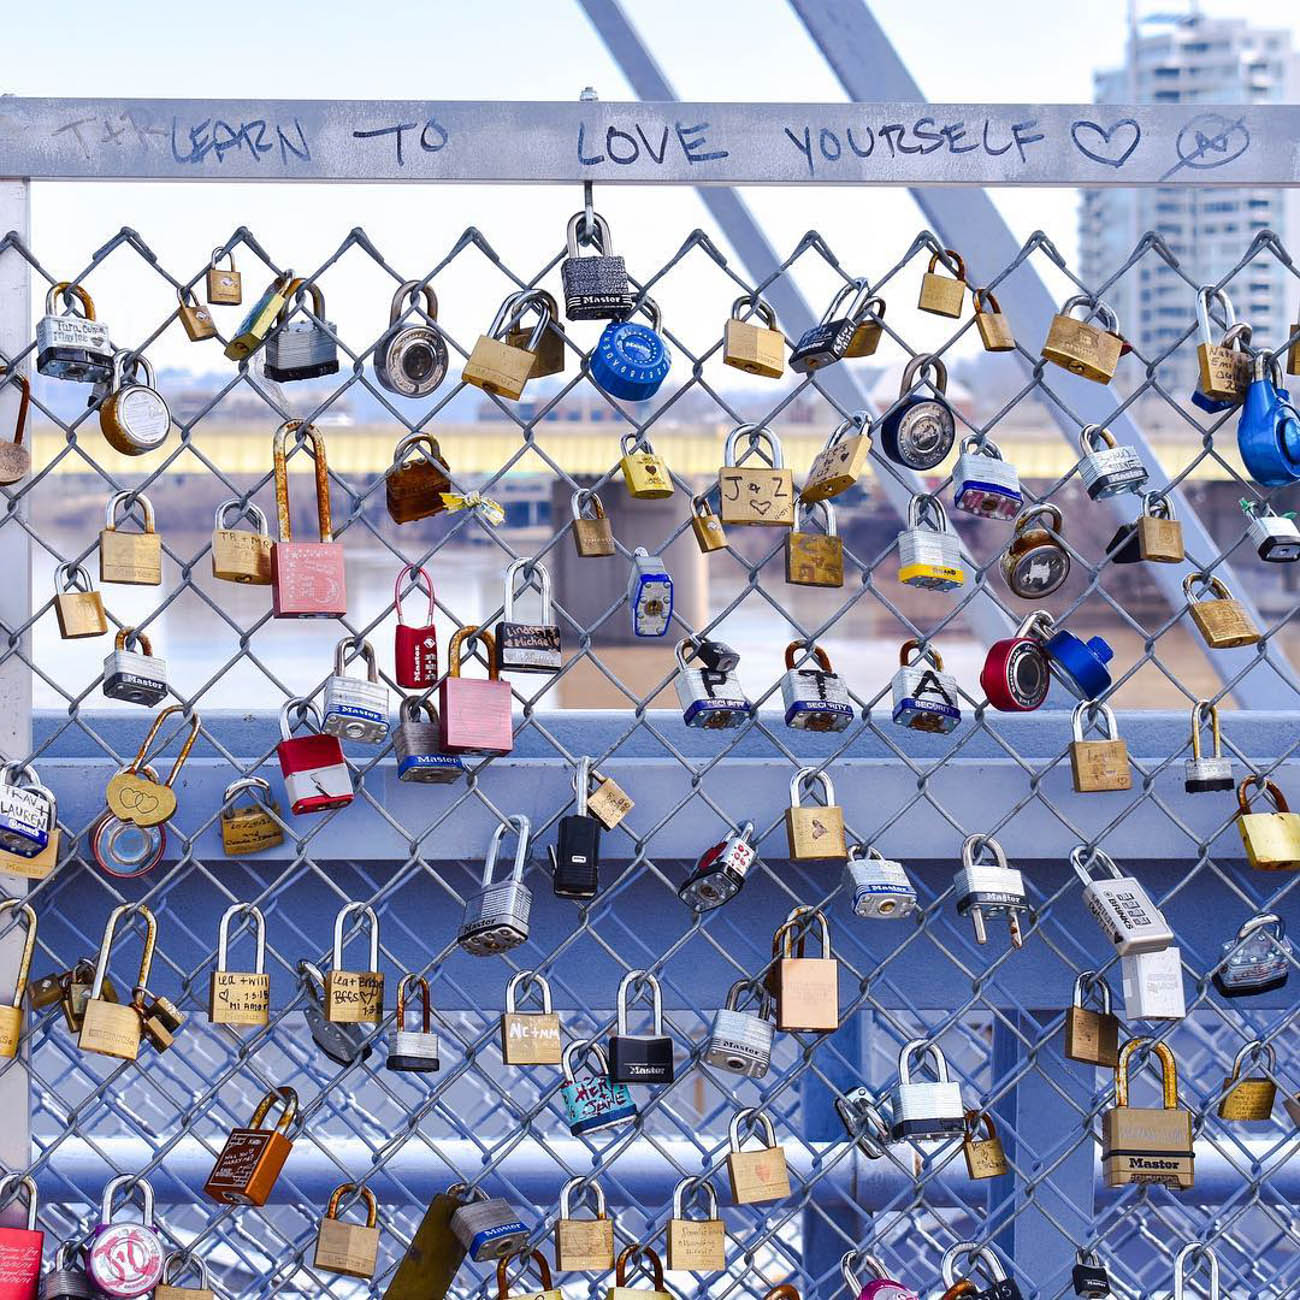 Our love for the Purple People Bridge is strong, almost as strong as these love locks. / Image courtesy of Instagram user @vic_land // Published: 3.20.19